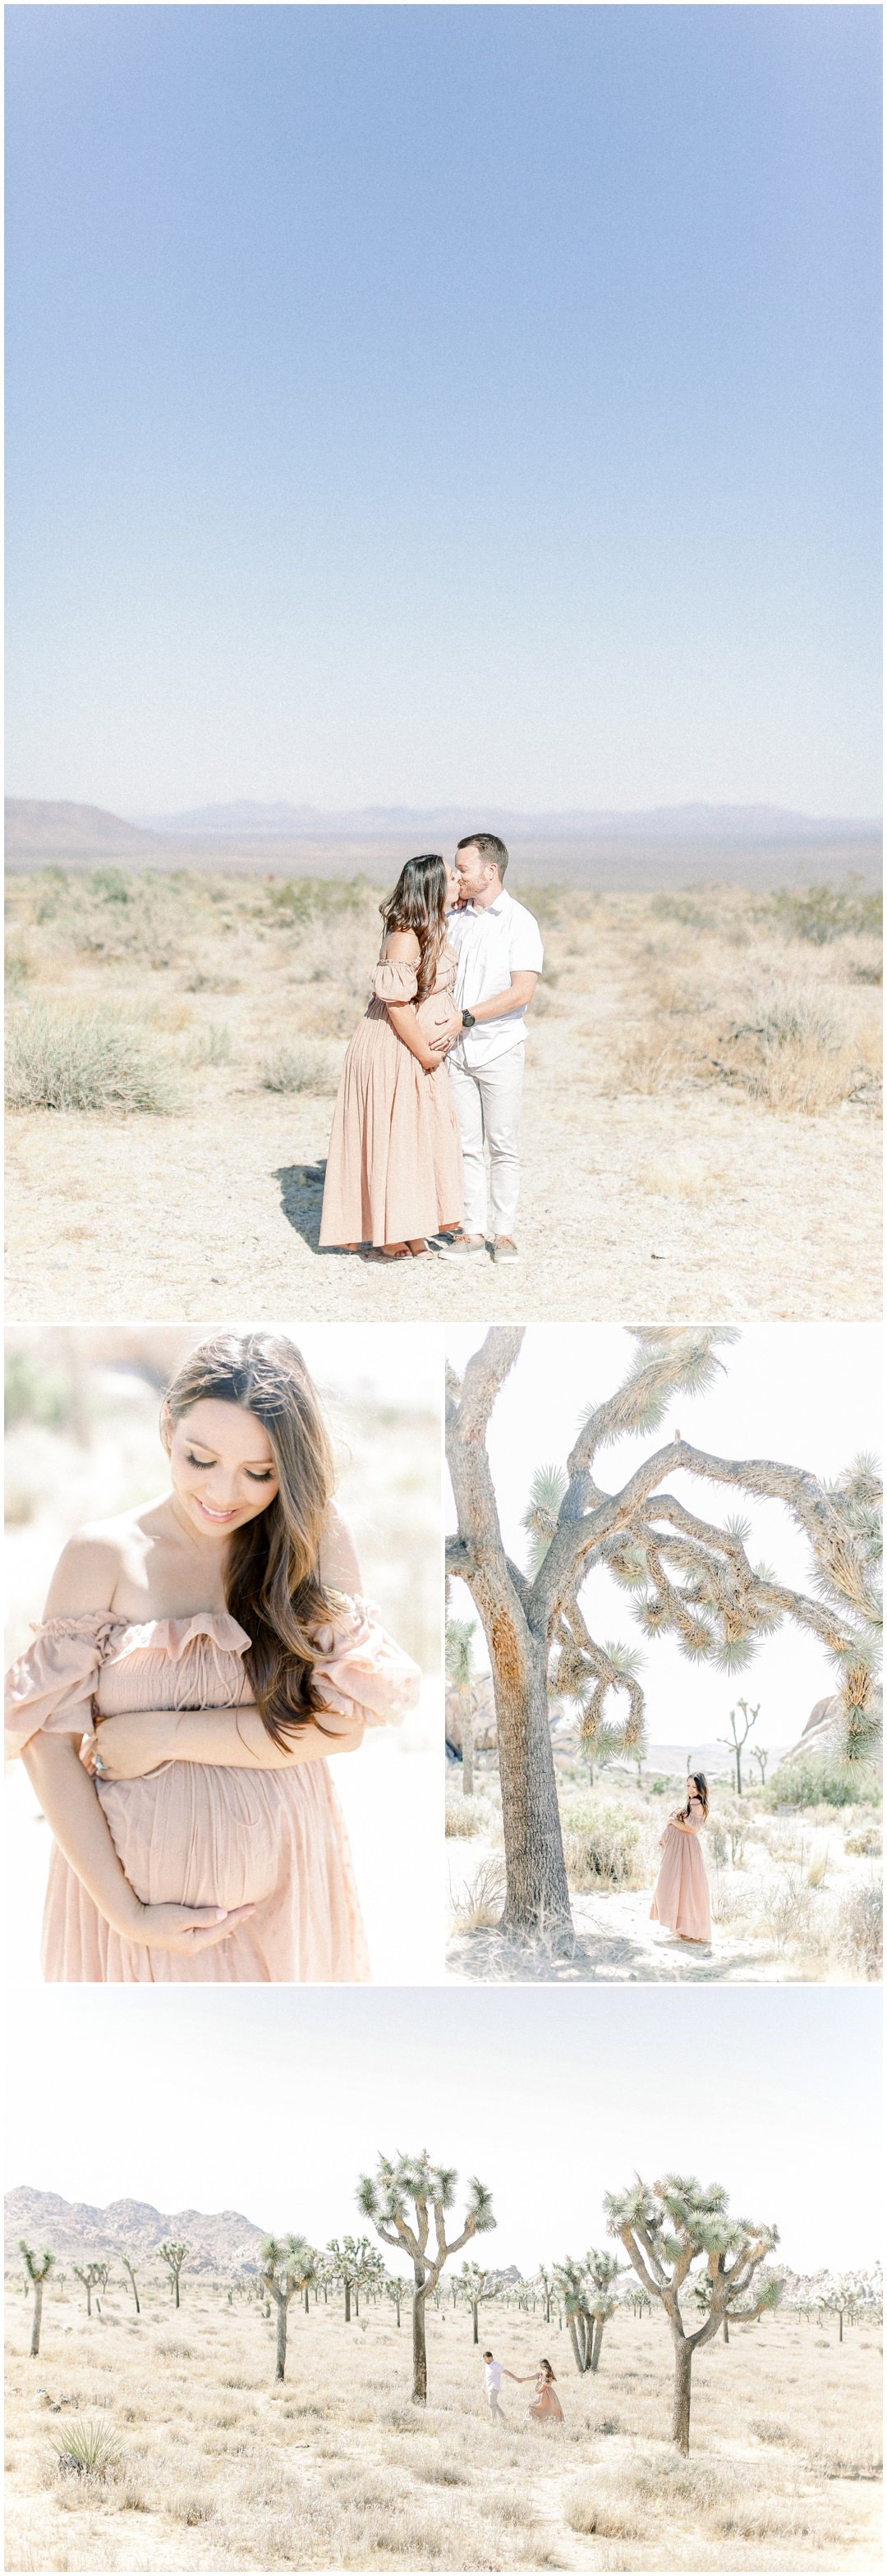 Newport_Beach_Joshua_Tree_Maternity_Photos_Session_Leliani_Hailey_Shane_Hailey_Maternity_Session__4269.jpg